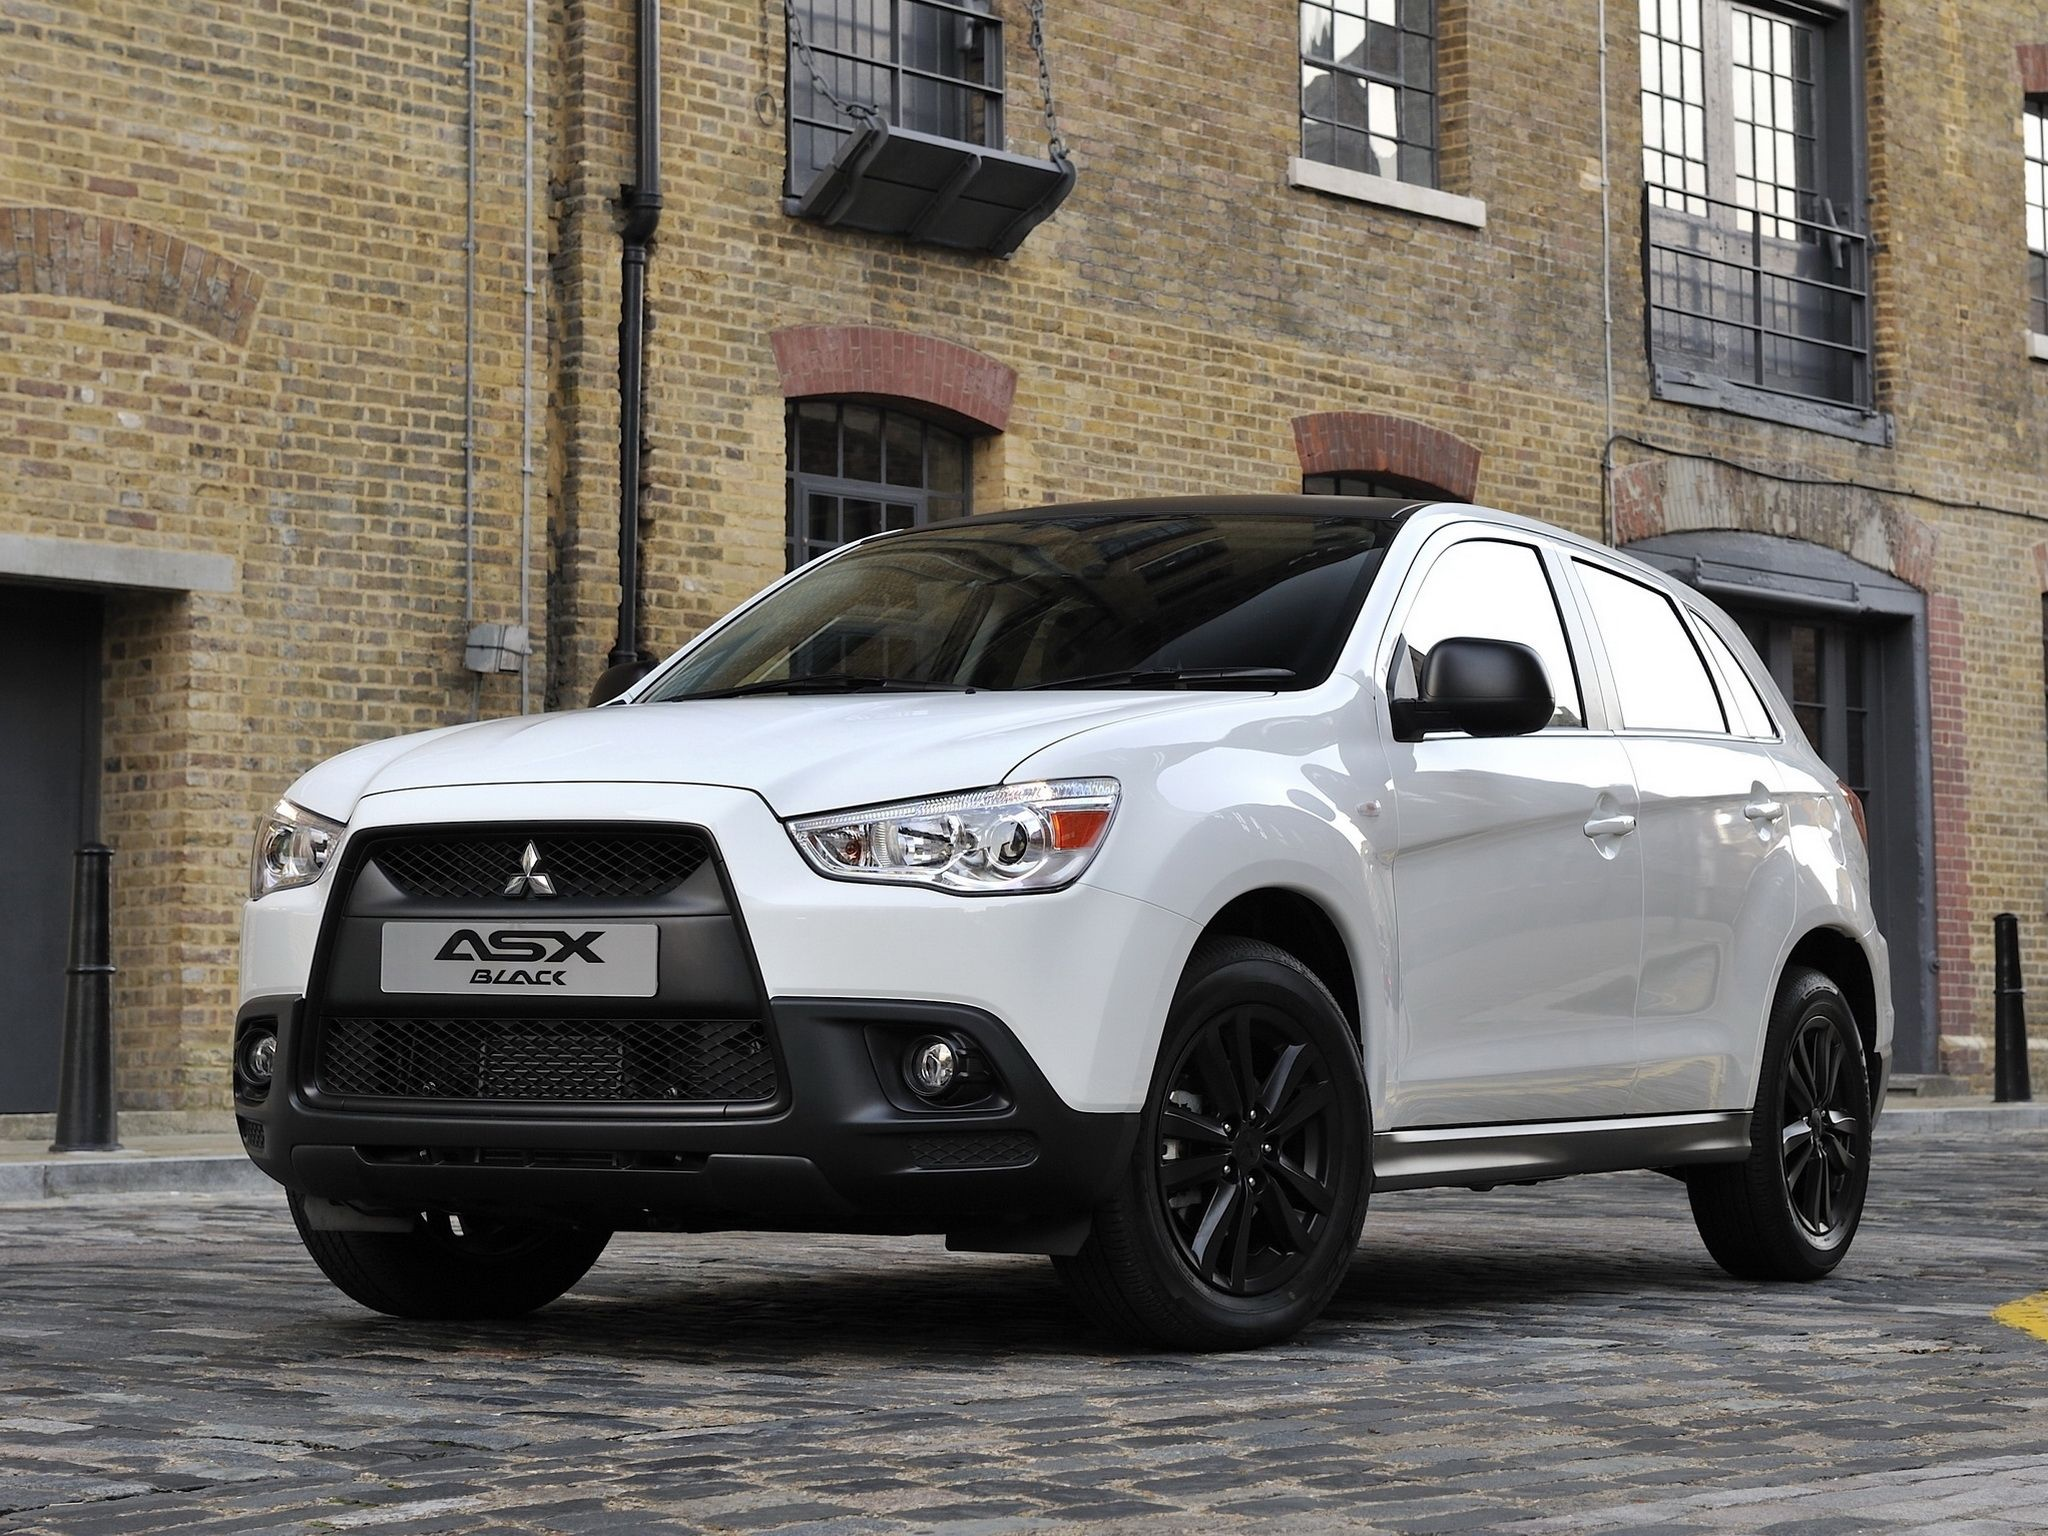 Mitsubishi asx black sold as an outlander in usa indonesia and several